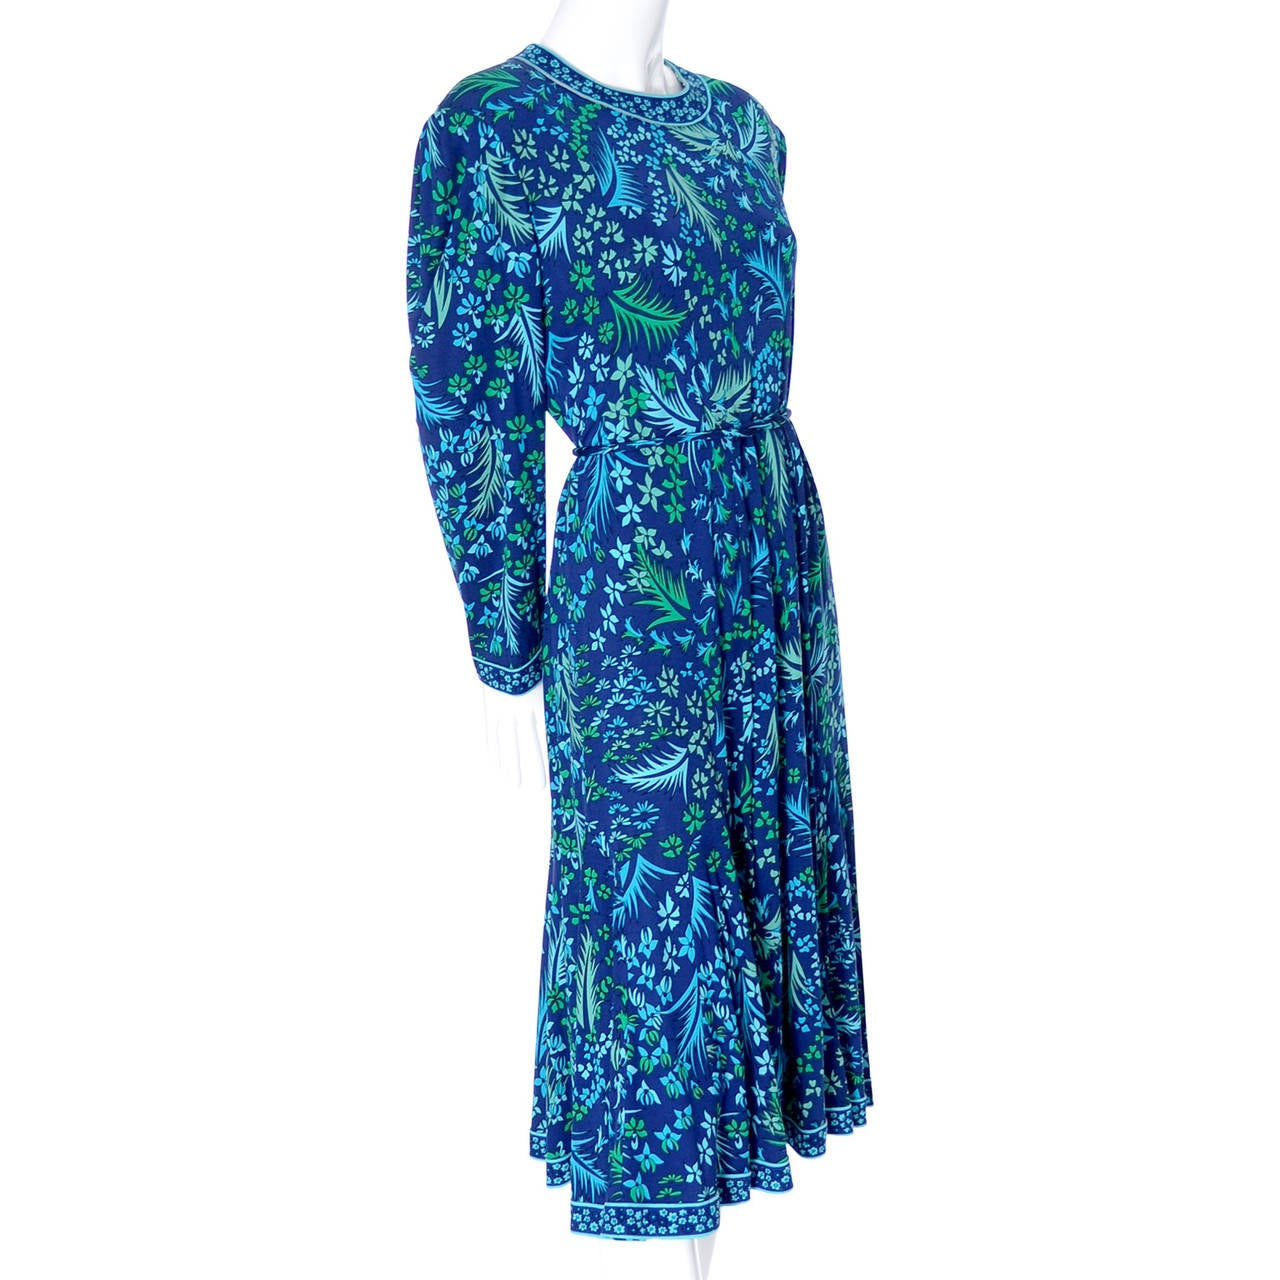 Bessi Silk Jersey Floral 1970s Vintage Dress Belt Firenze Italia Blue For Sale 1